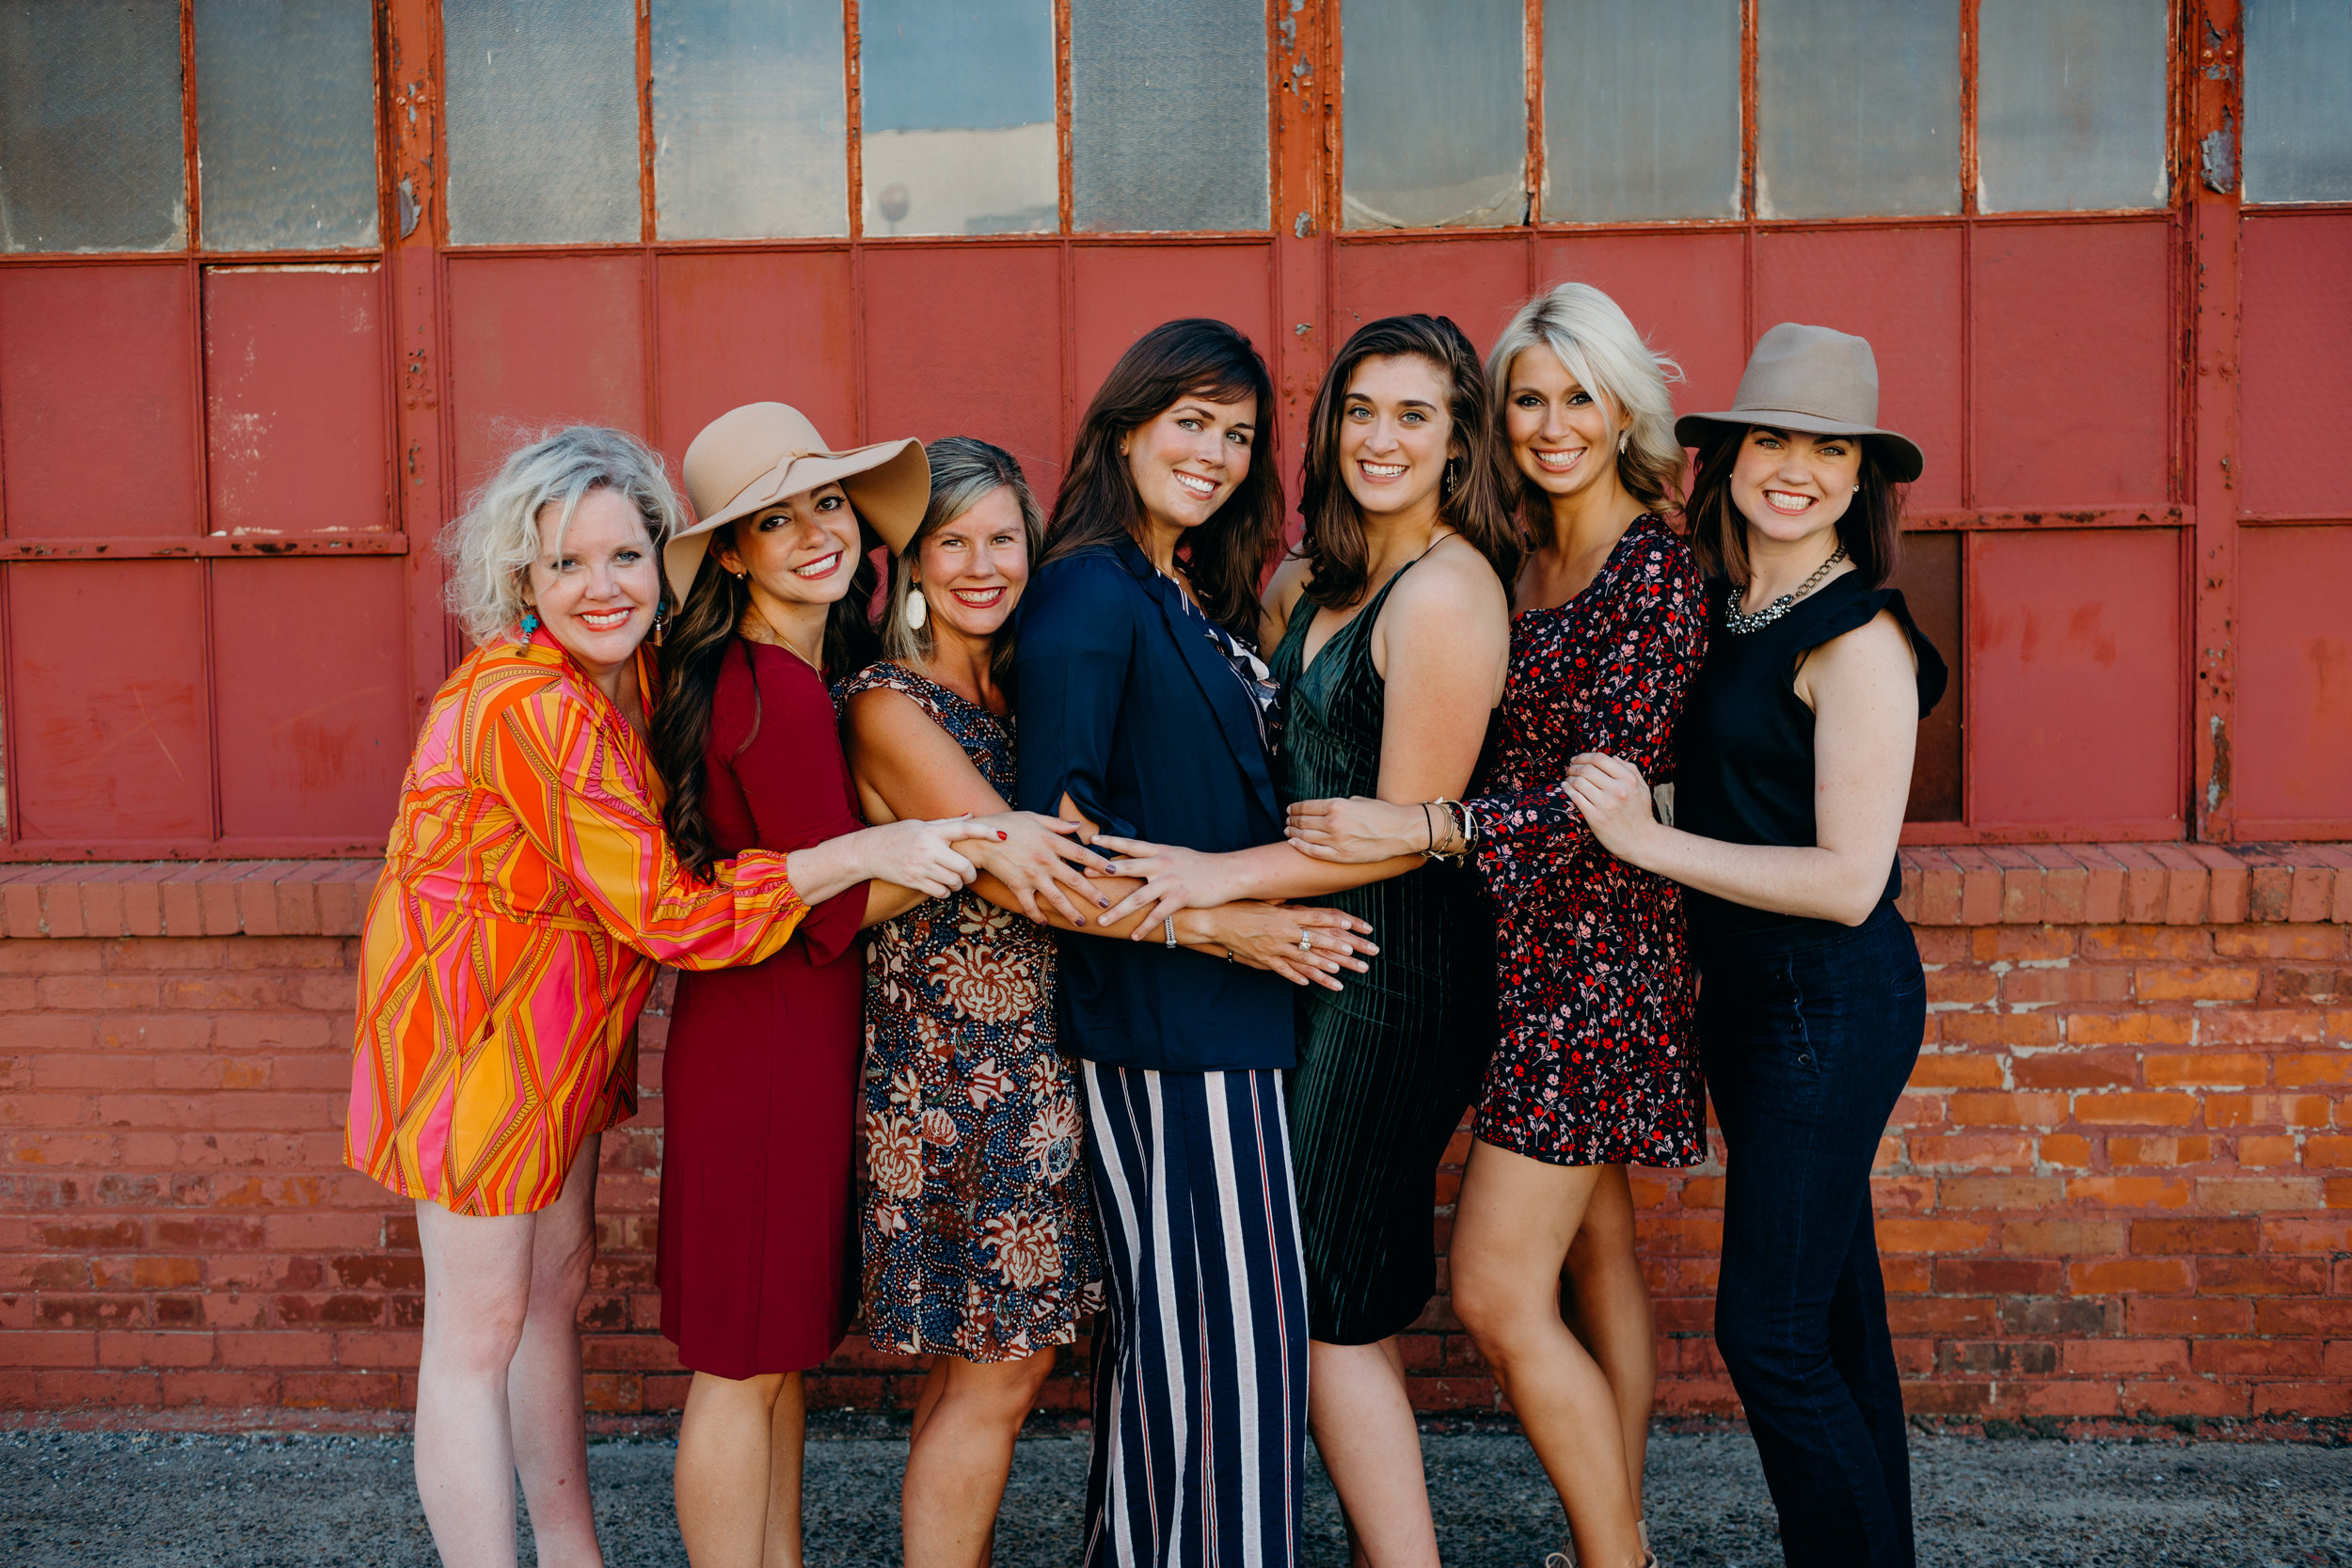 YWC Fashion Show Committee. Photo by Amy Barber, YWC member and owner of  Bluegrass Bebe Photography .